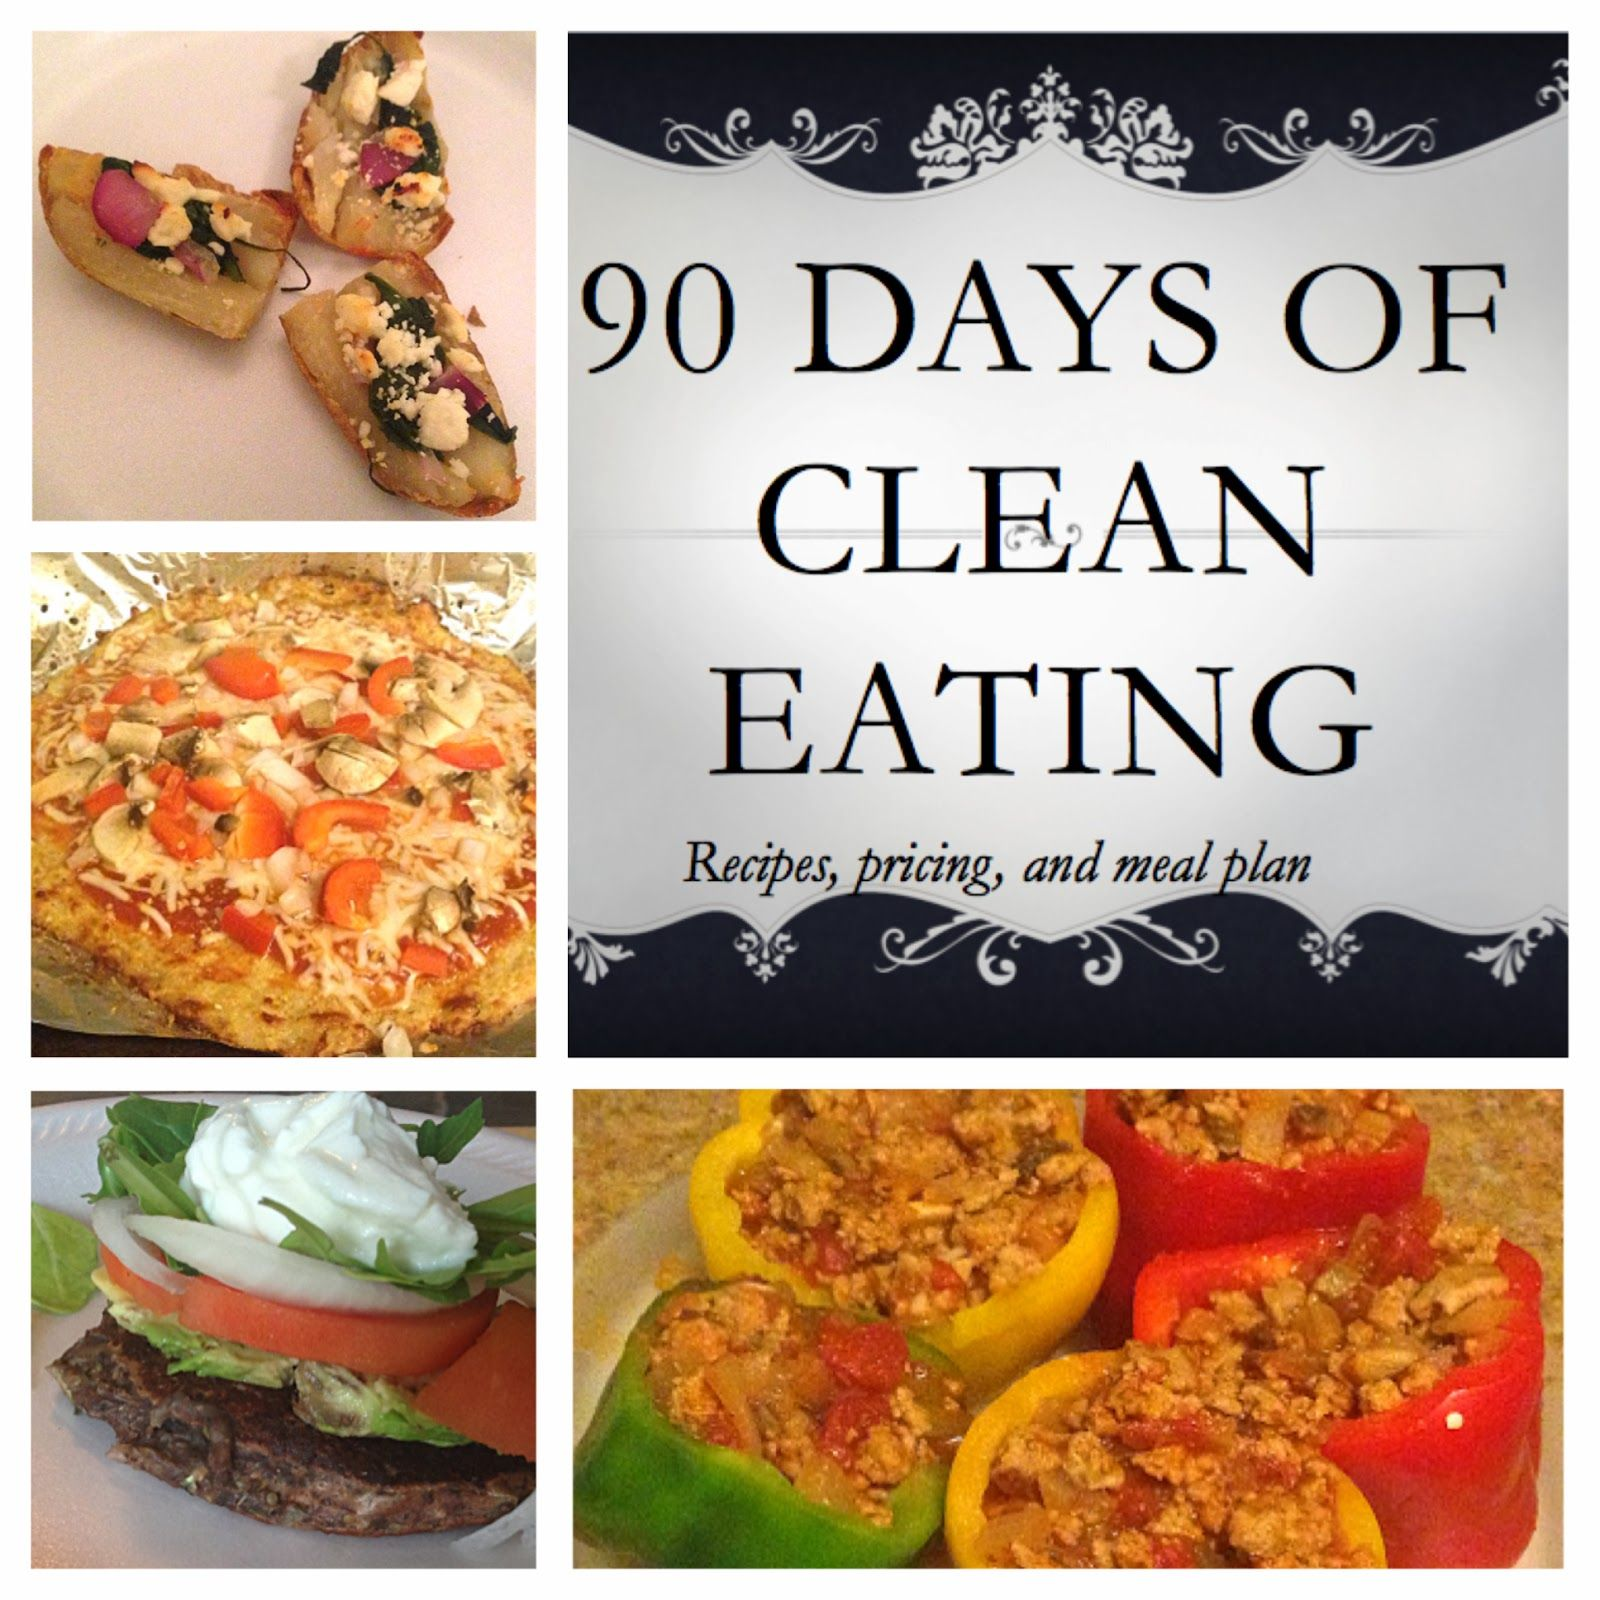 90 Day Clean Eating Meal Plans with Recipes and Pricing | Clean ...